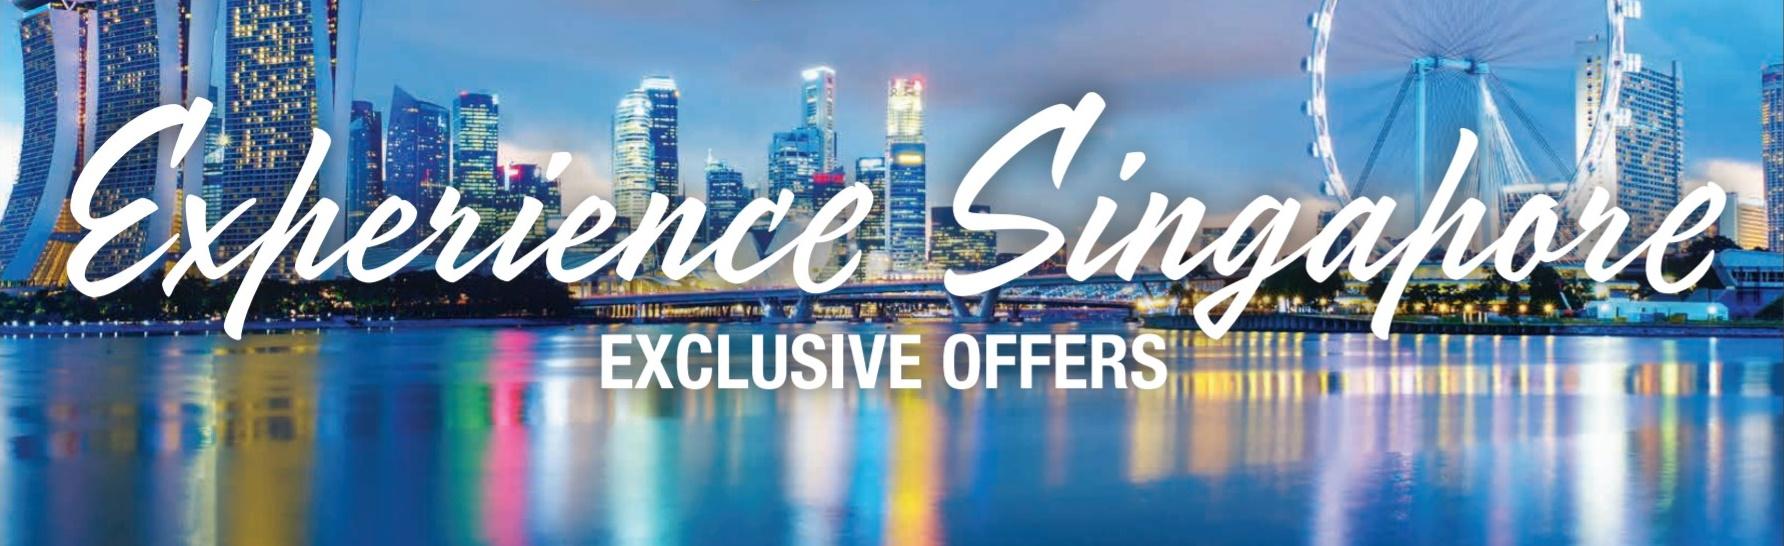 Expereince Singapore Exclusive Offers